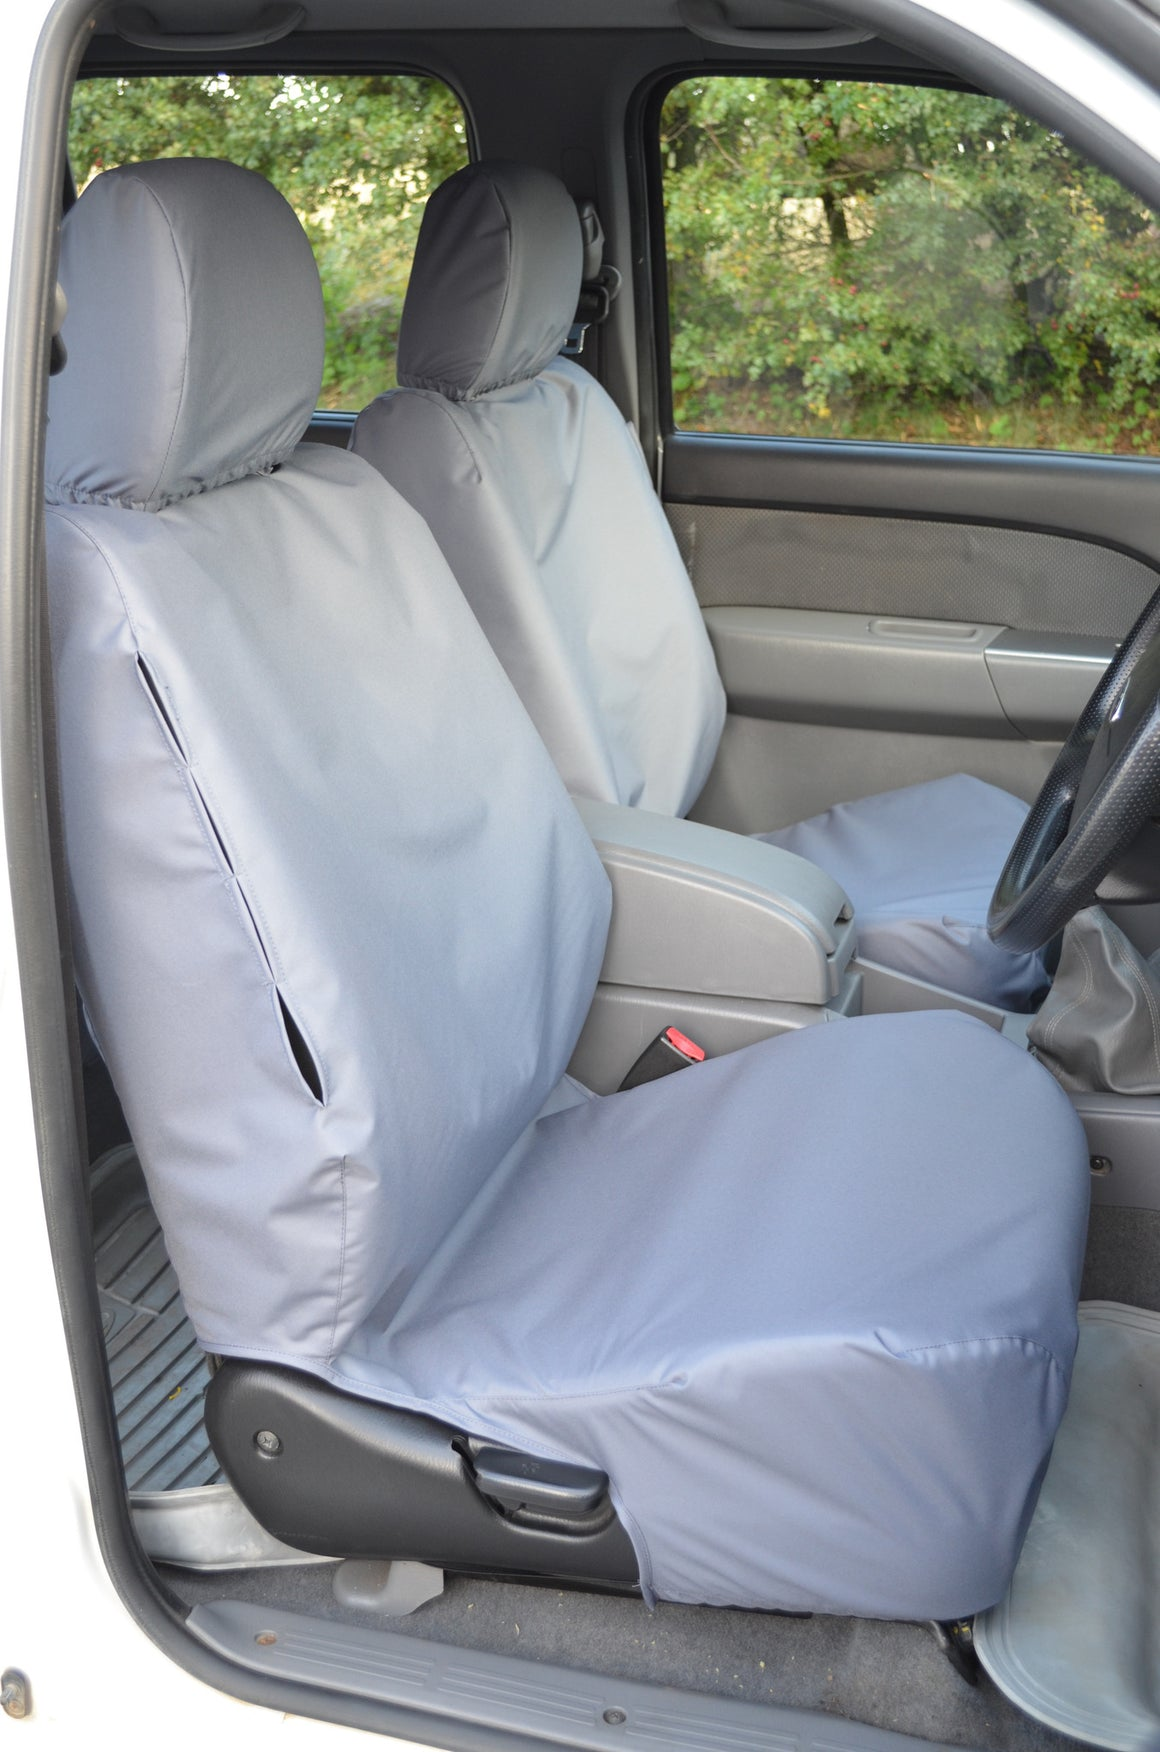 Ford Ranger 2006 to 2012 Seat Covers